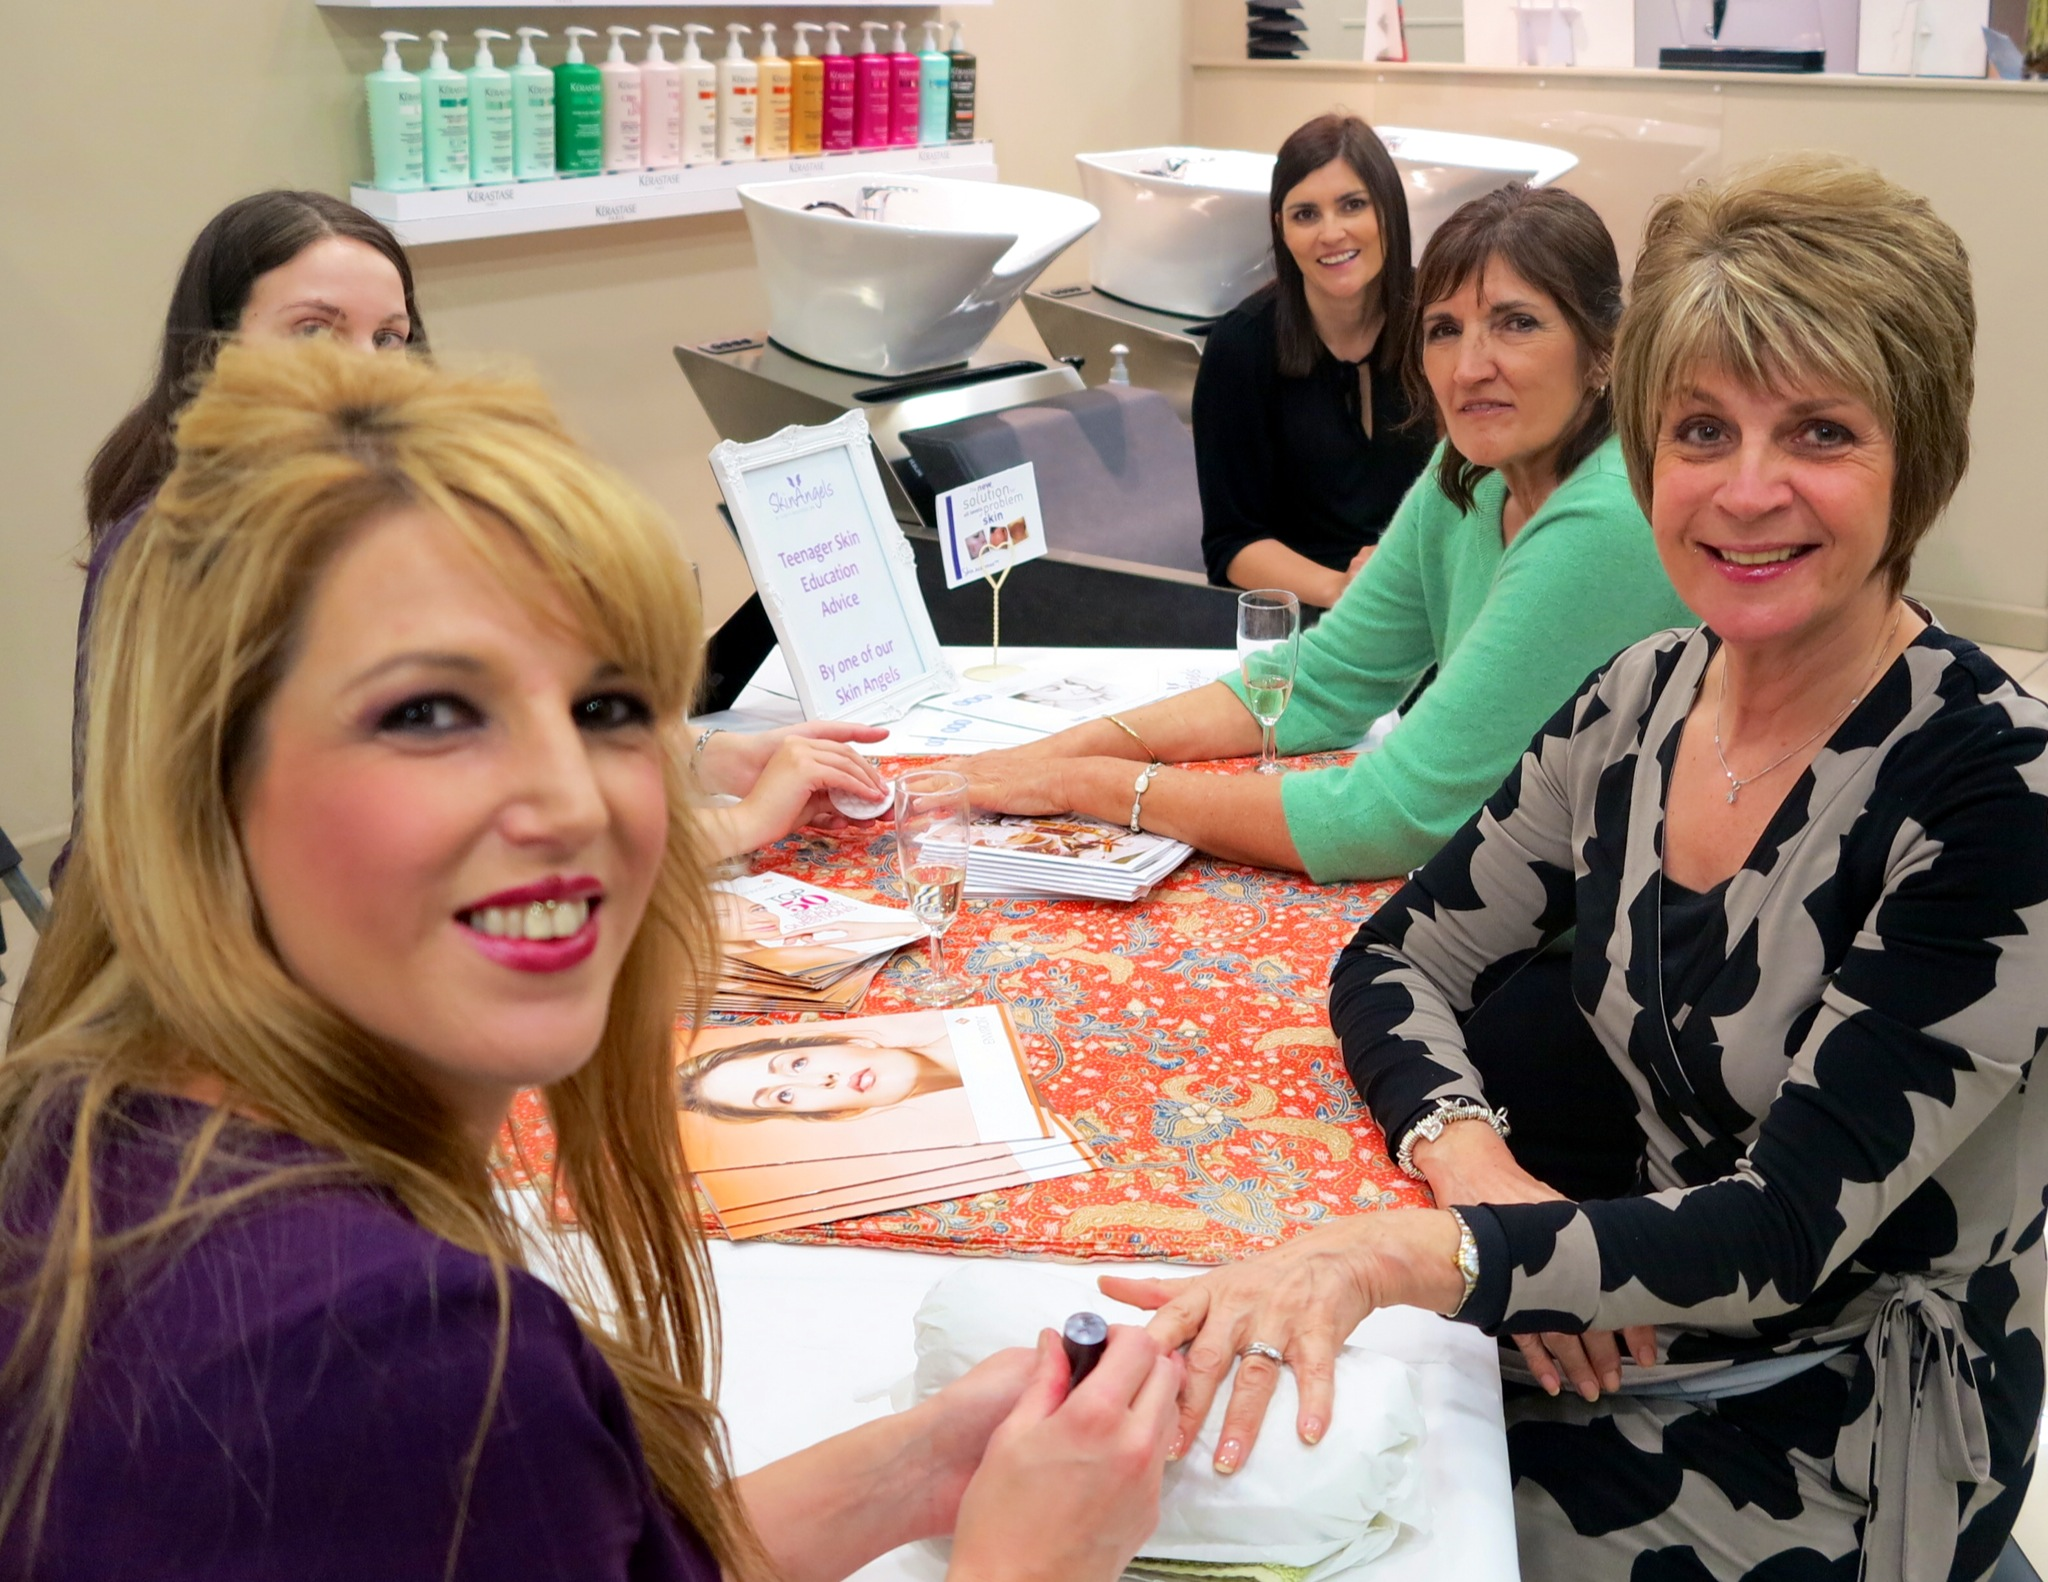 Clients getting nails done